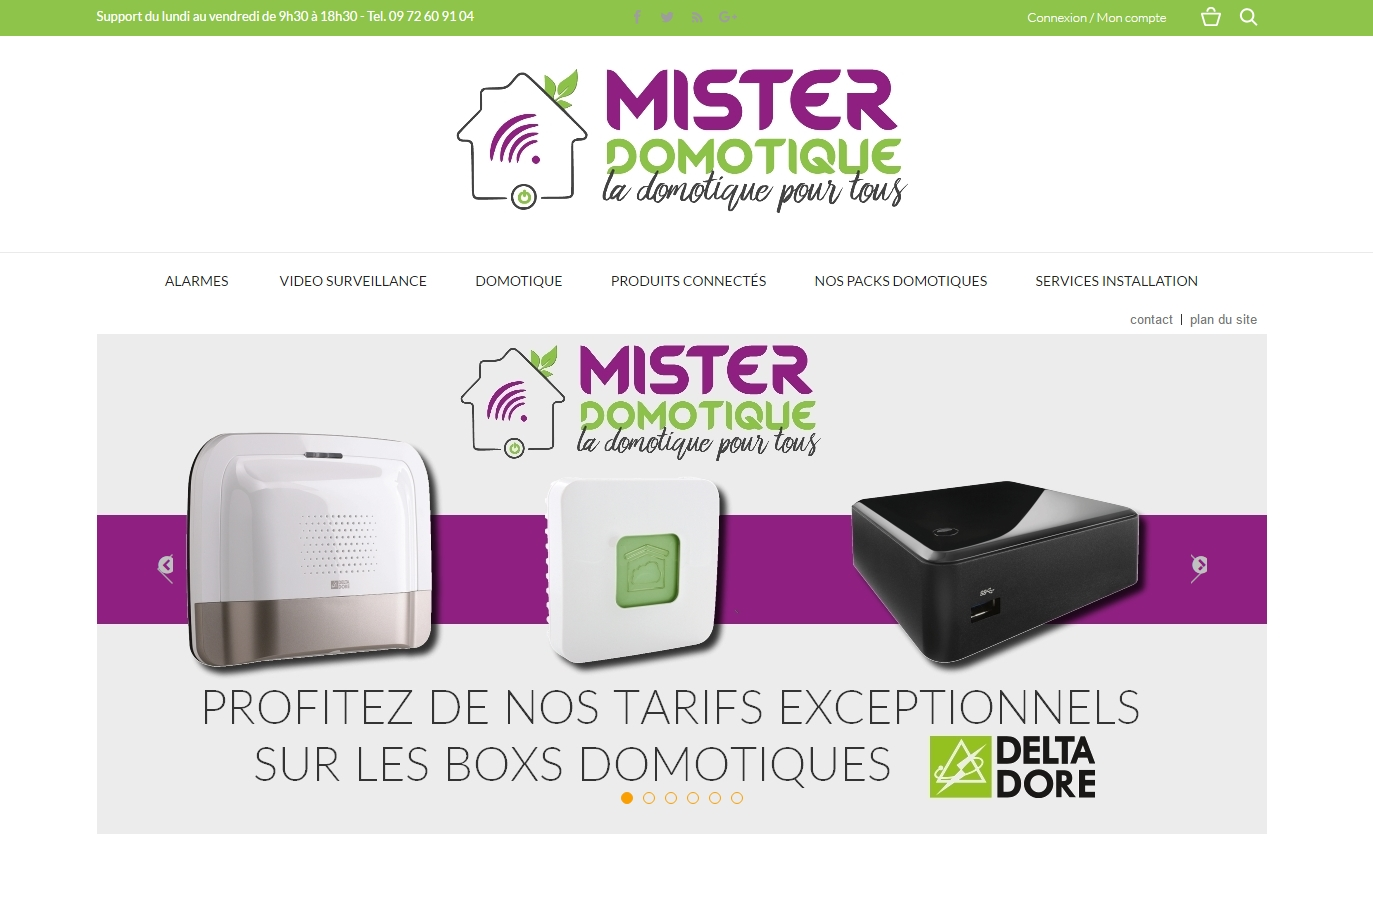 Creation du site Misterdomotique.fr